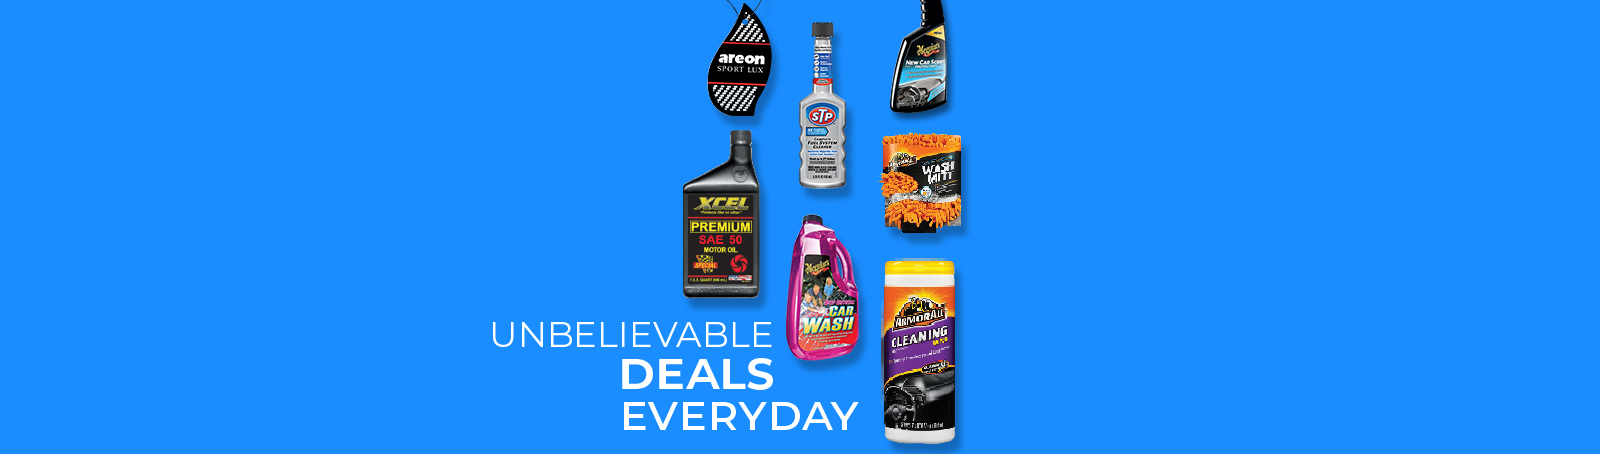 Unbelievable Deals Everyday in our Wholesale.